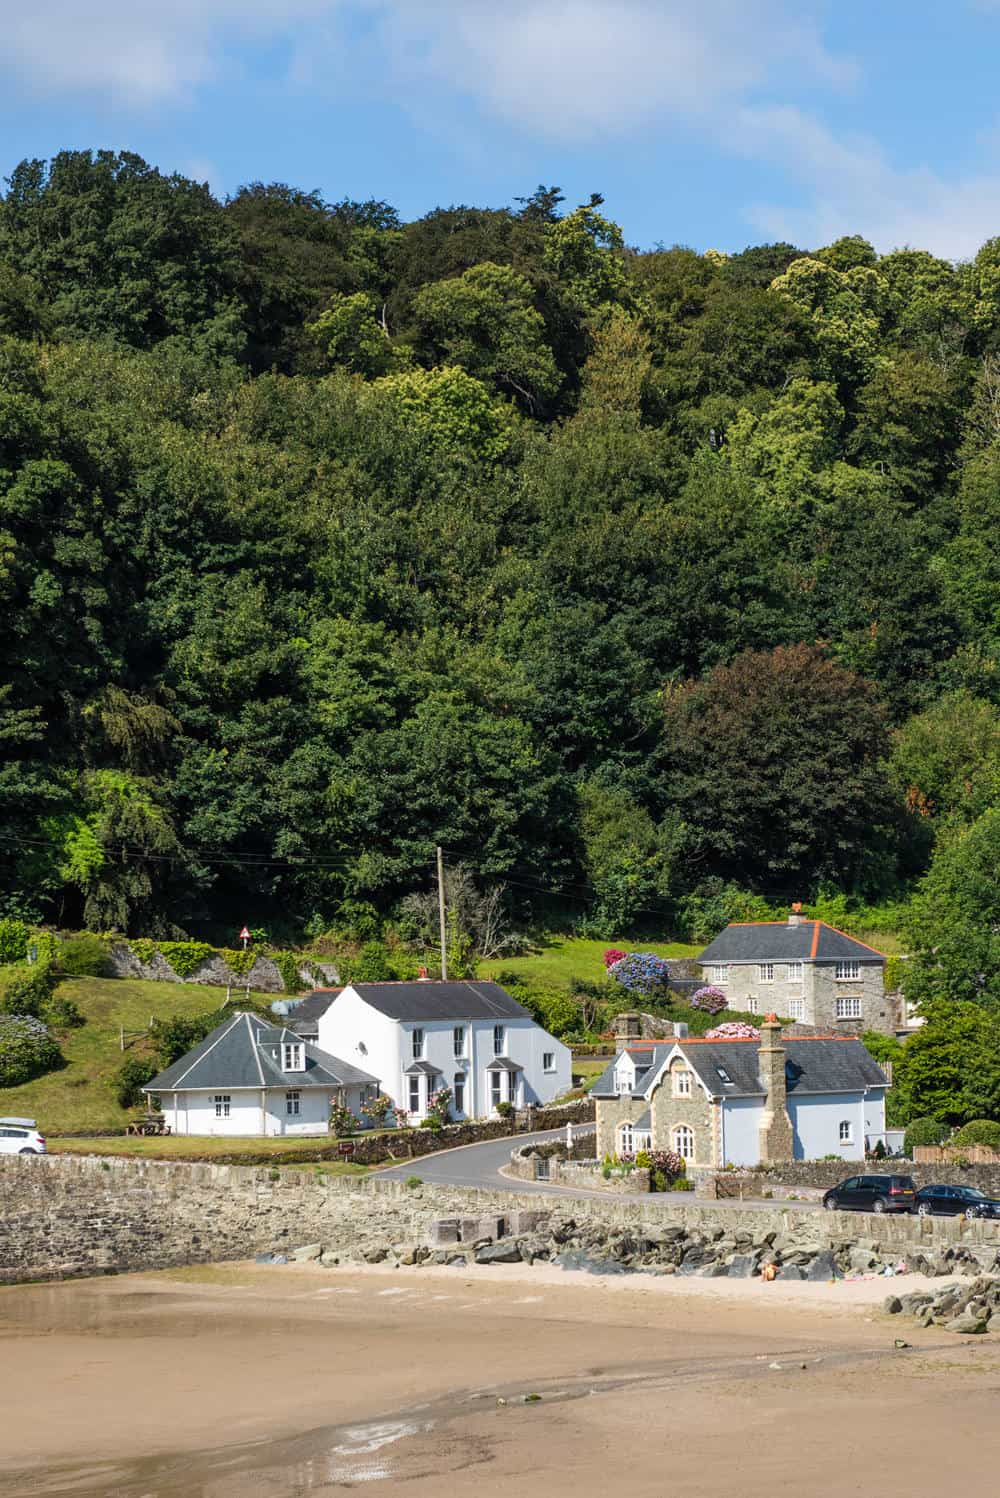 things to consider when buying a holiday home in Salcombe